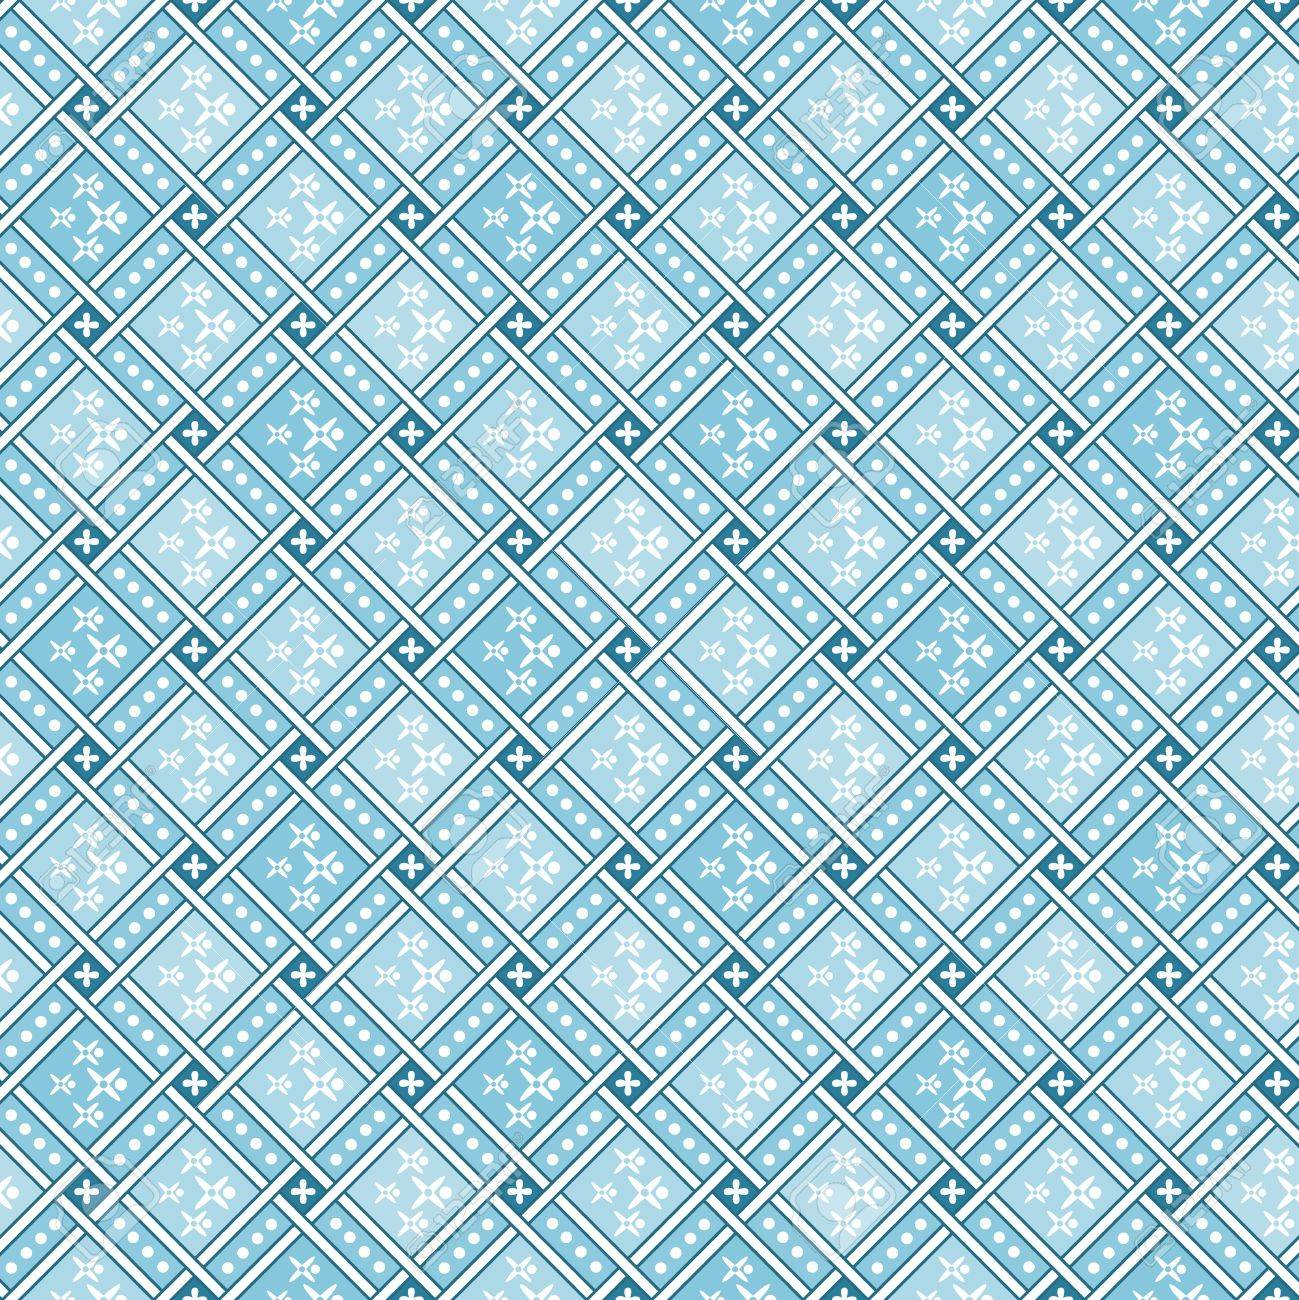 Blue geometric tiles Decorative Abstract Seamless Pattern texture Stock Vector - 18676059